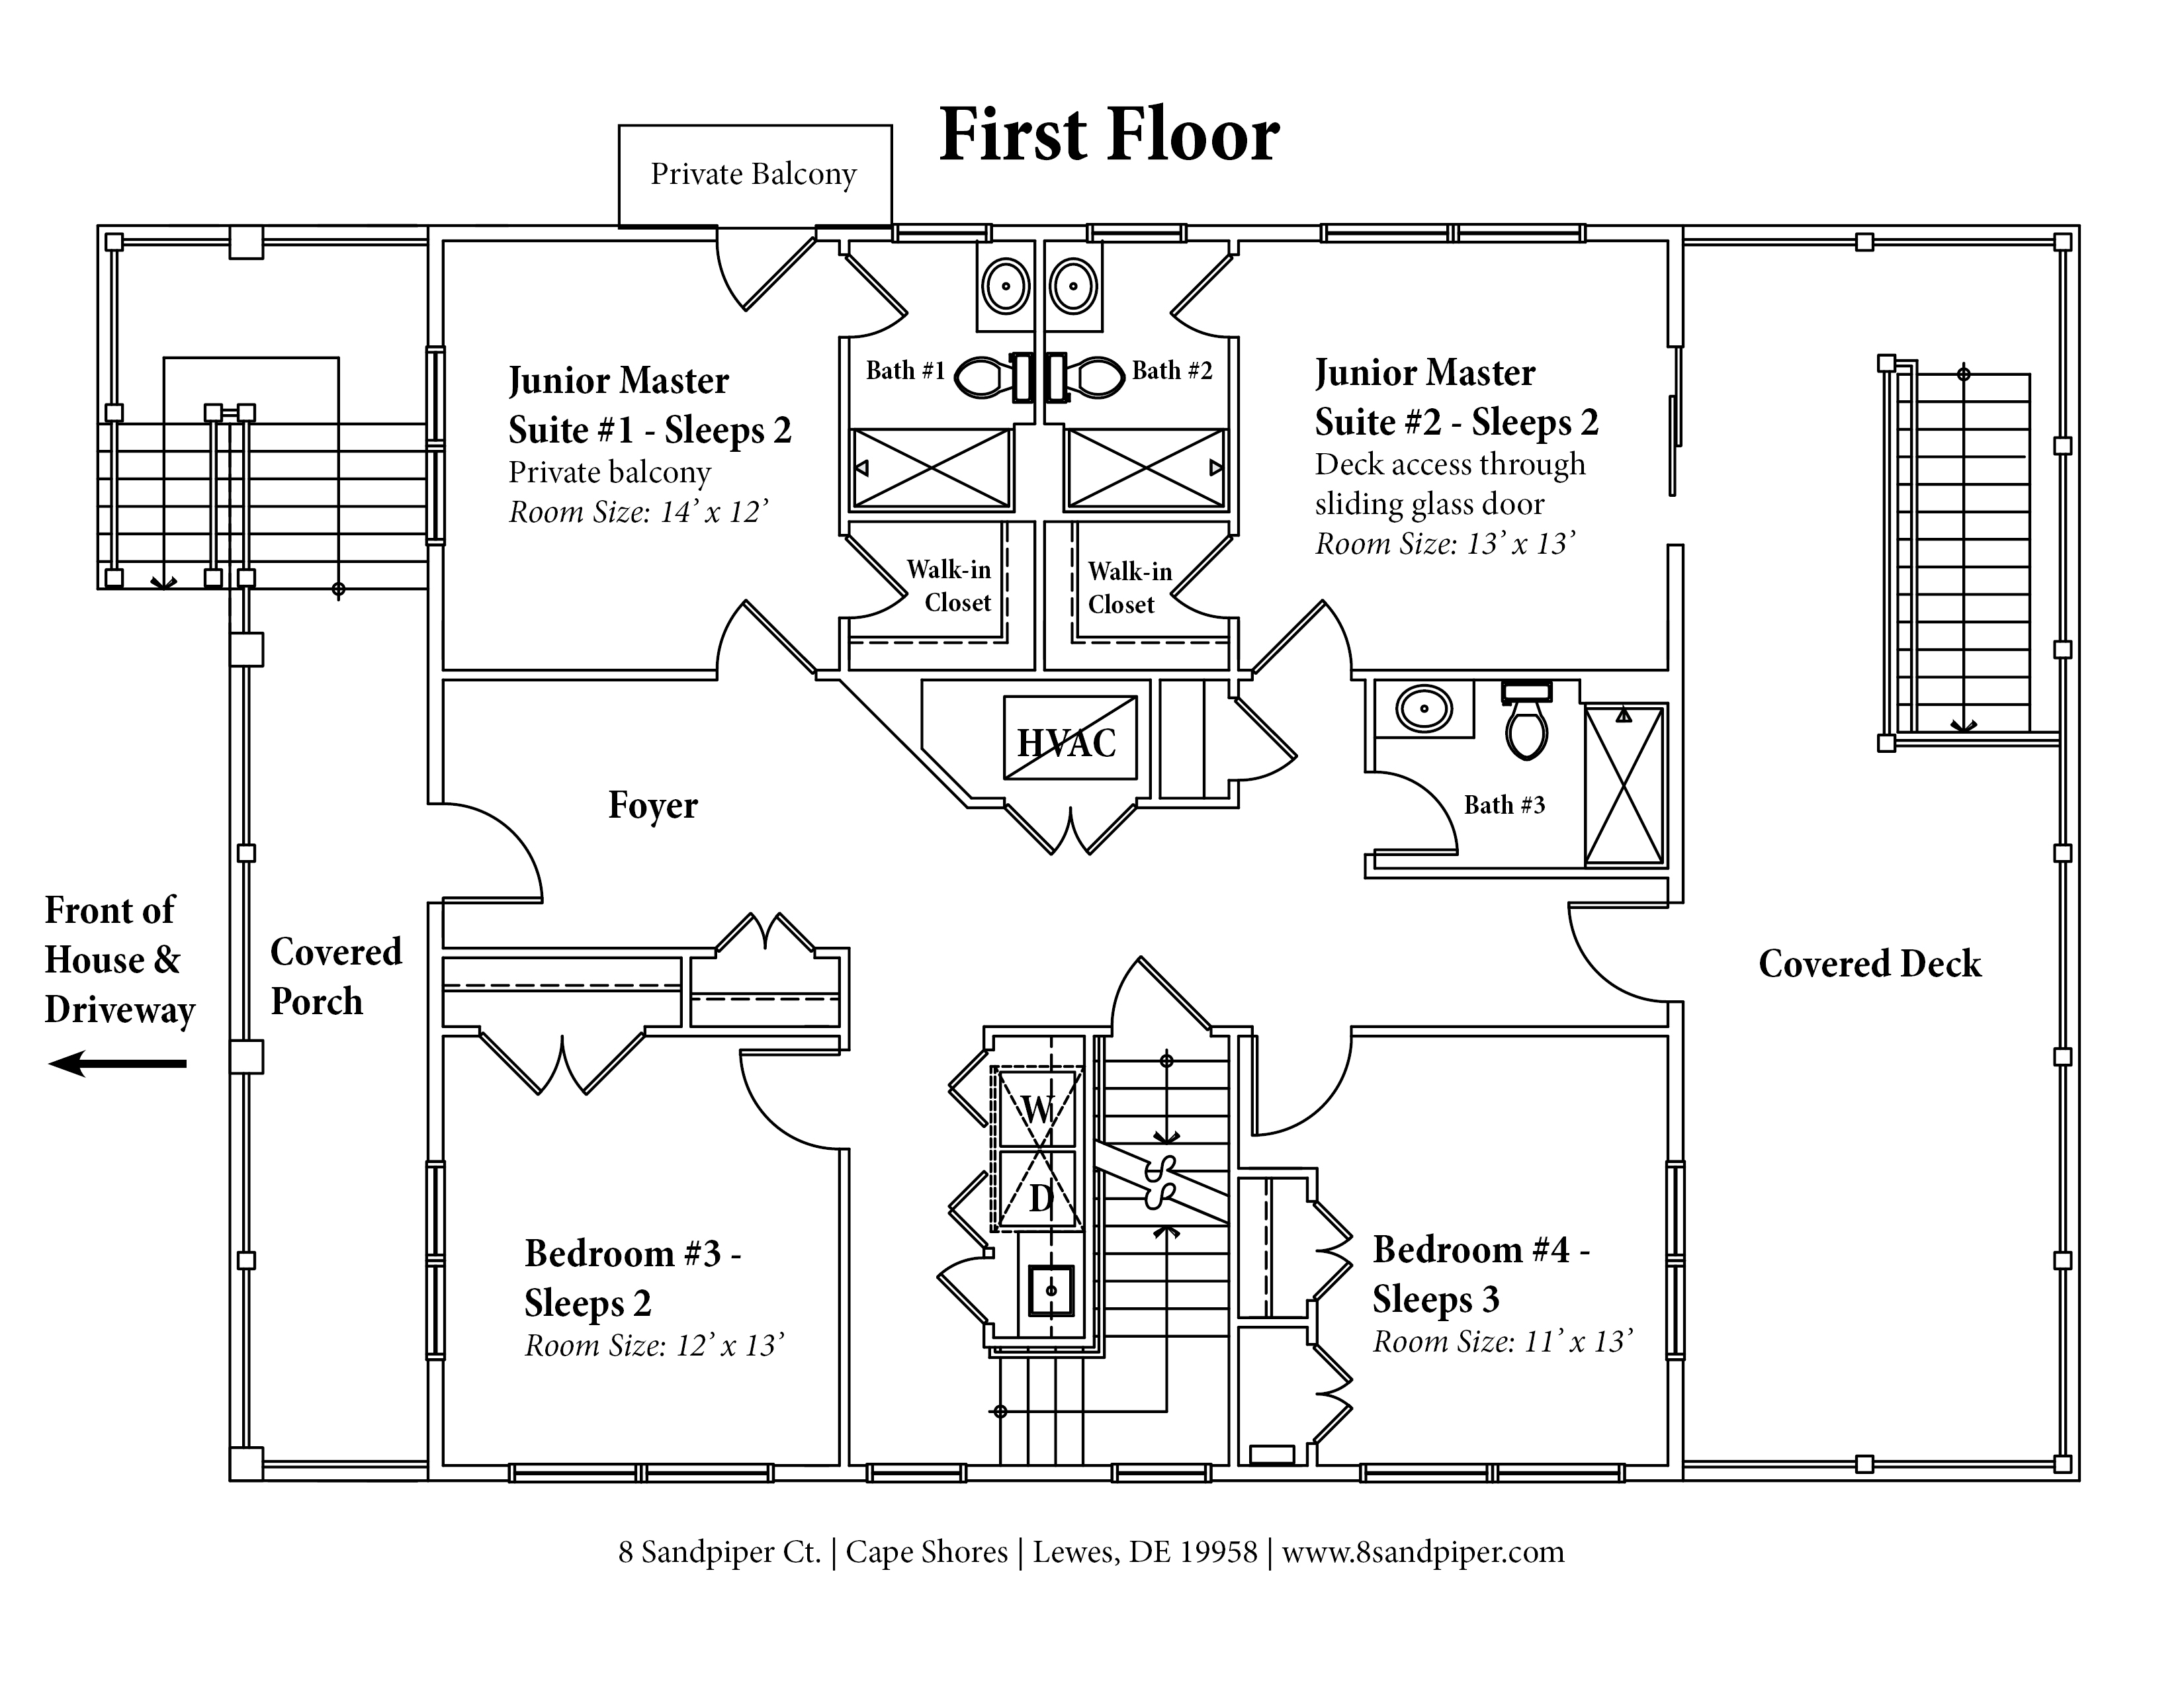 House floor plan 8 sandpiper for Ground floor vs first floor